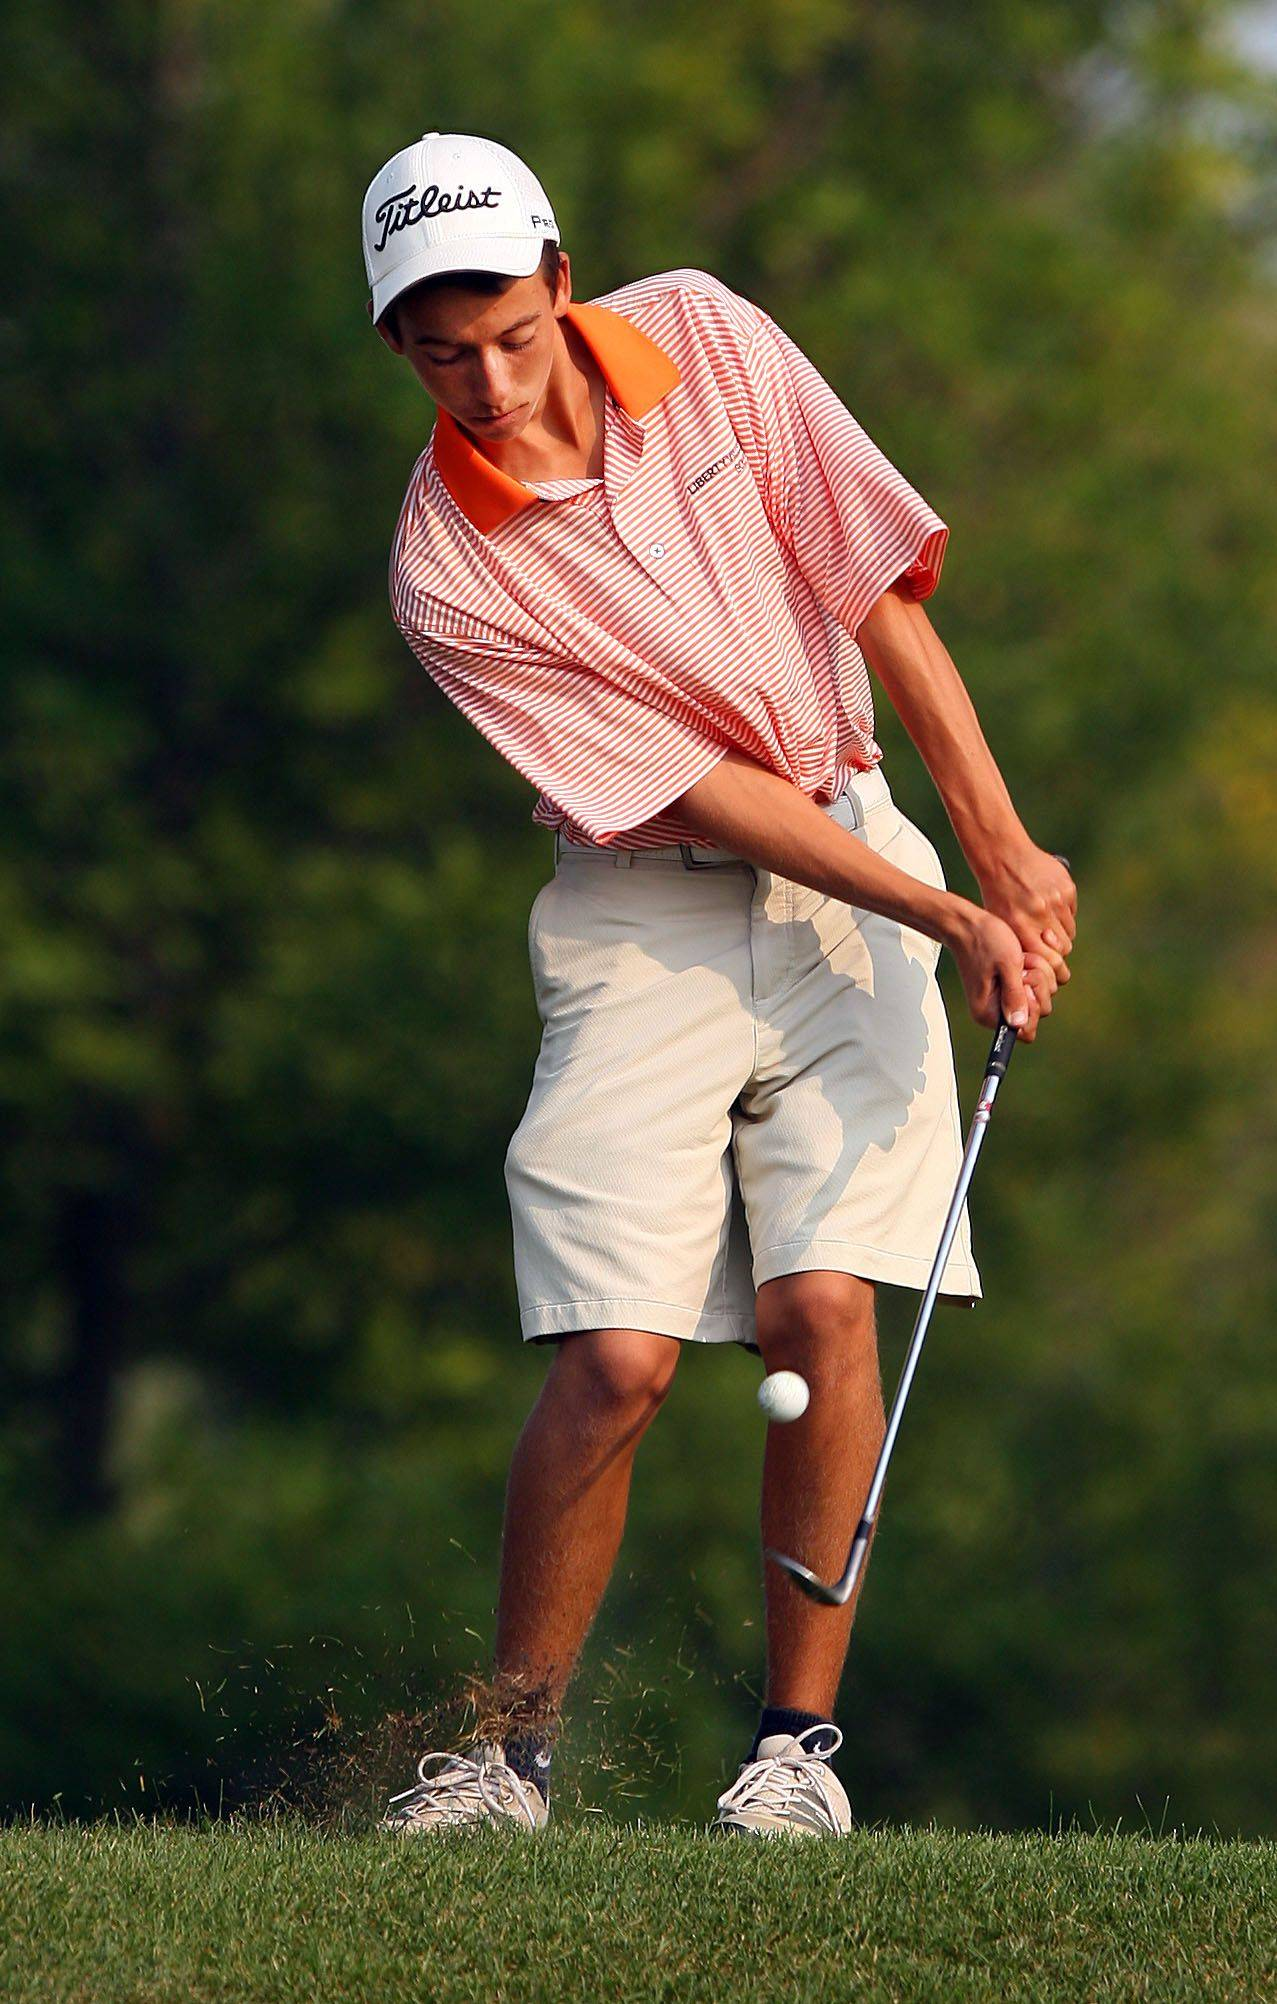 Libertyville's John Cordan chips on the second hole during boys golf action Tuesday at Arboretum in Buffalo Grove.